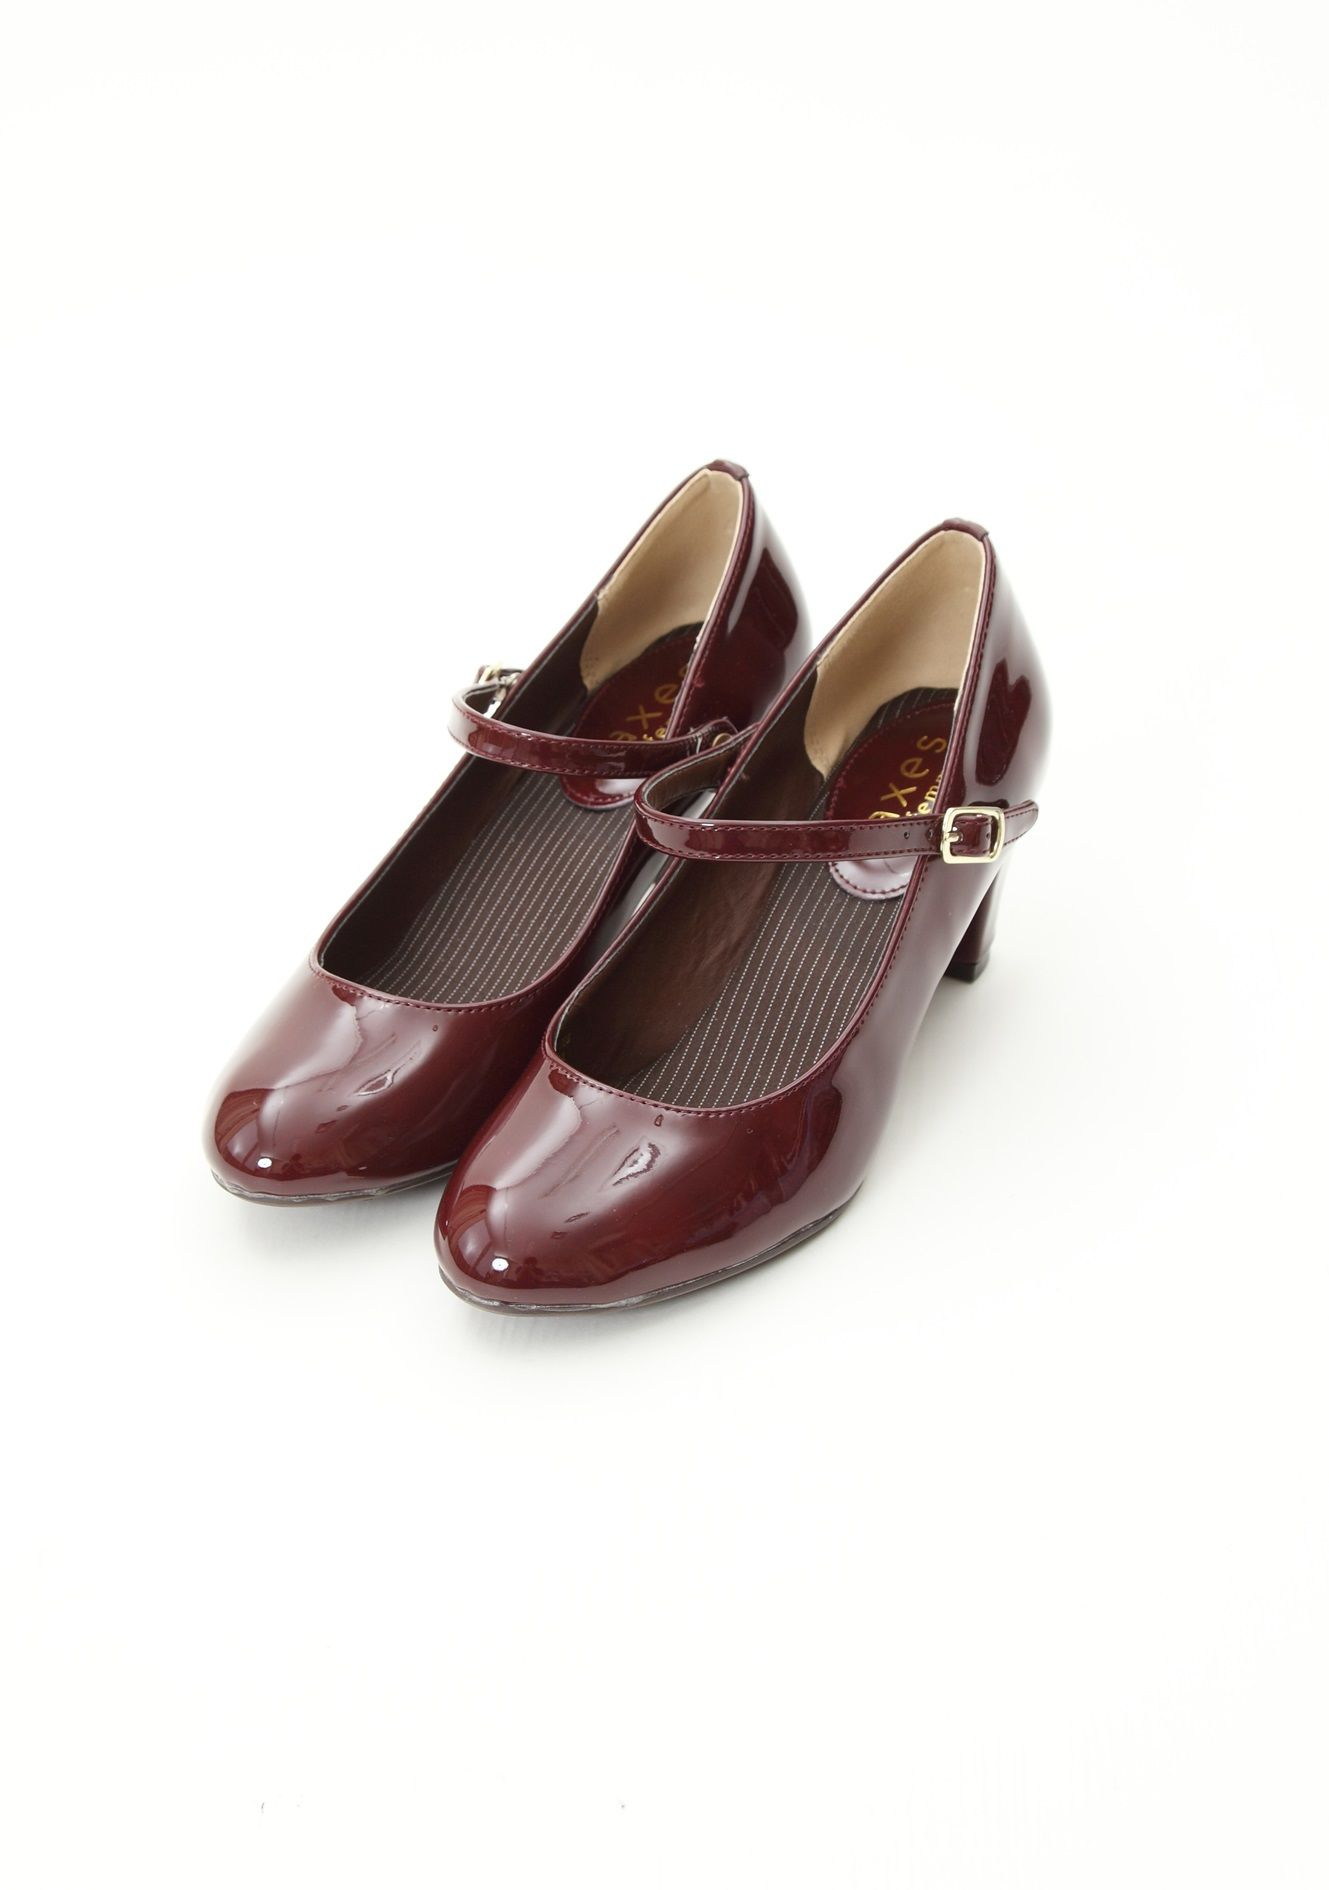 axes femme online shop エナメル&ベロアパンプス